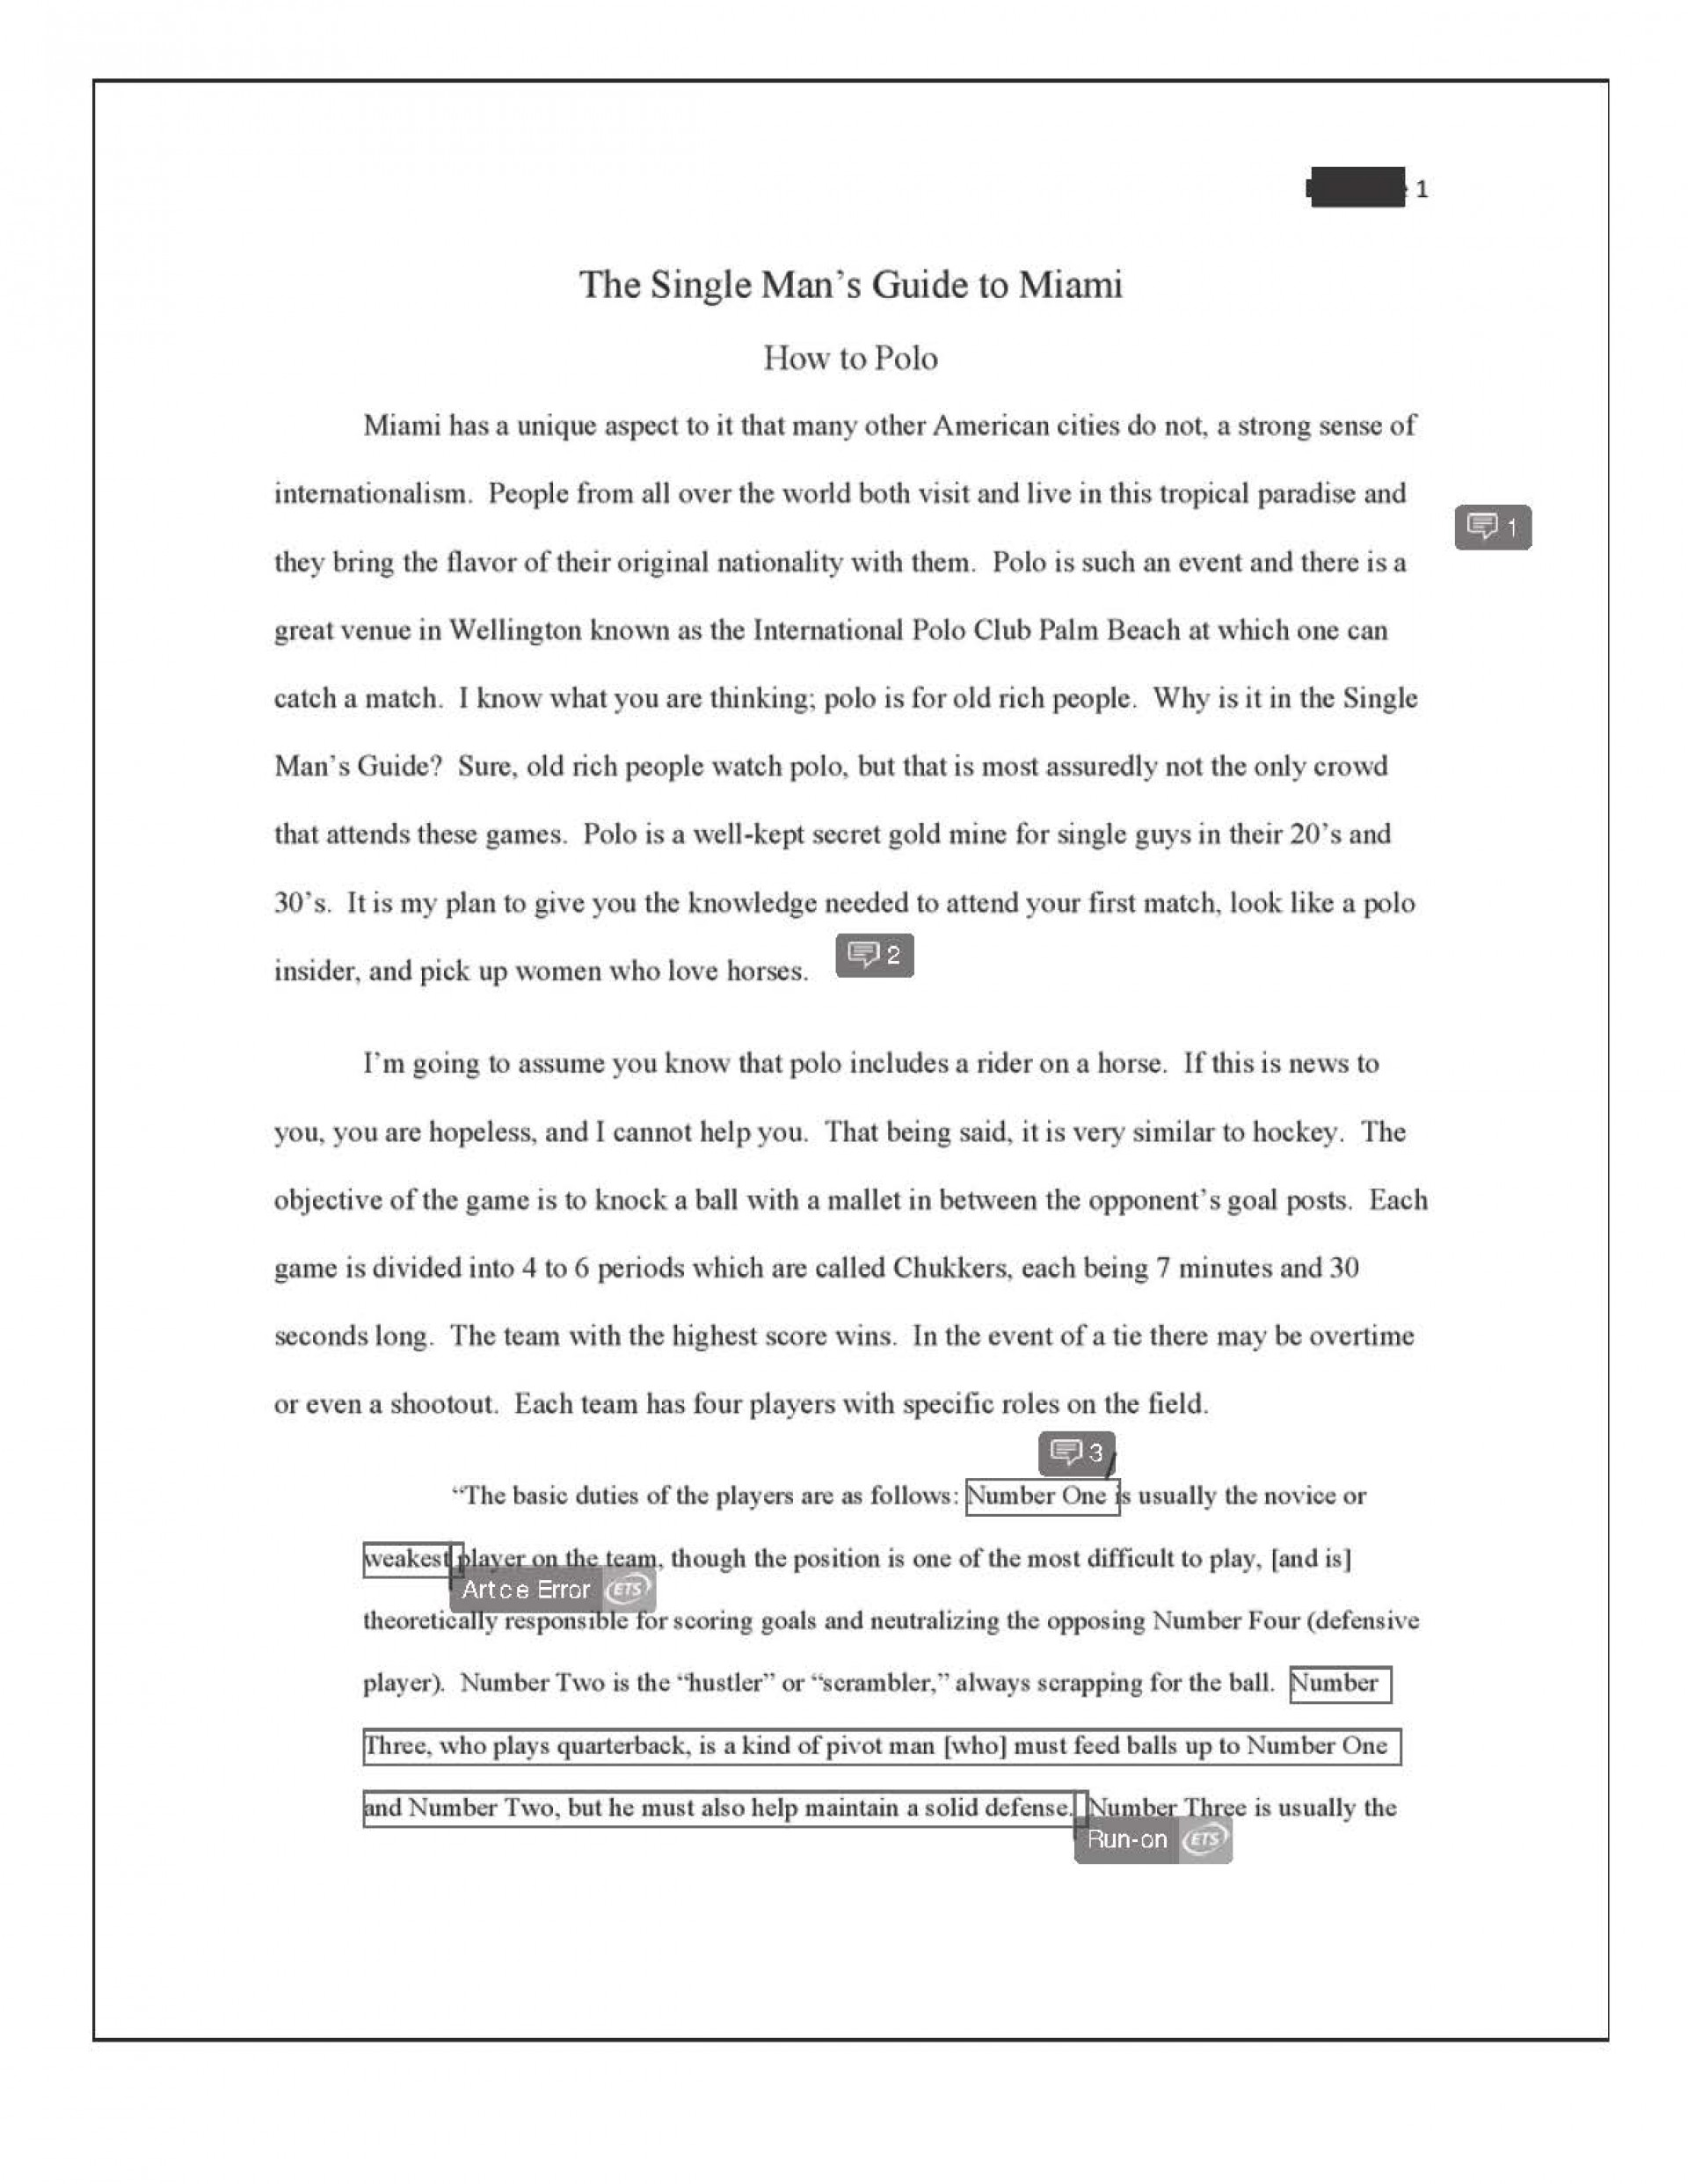 007 Informative Essay Kinds Of Writing Types Essays The Center In Hindi Final How To Polo Redacted P Pdf Task Slideshare Ppt Withs Wikipedia Dreaded Graphic Organizer Middle School Rubric 6th Grade Topics 1920